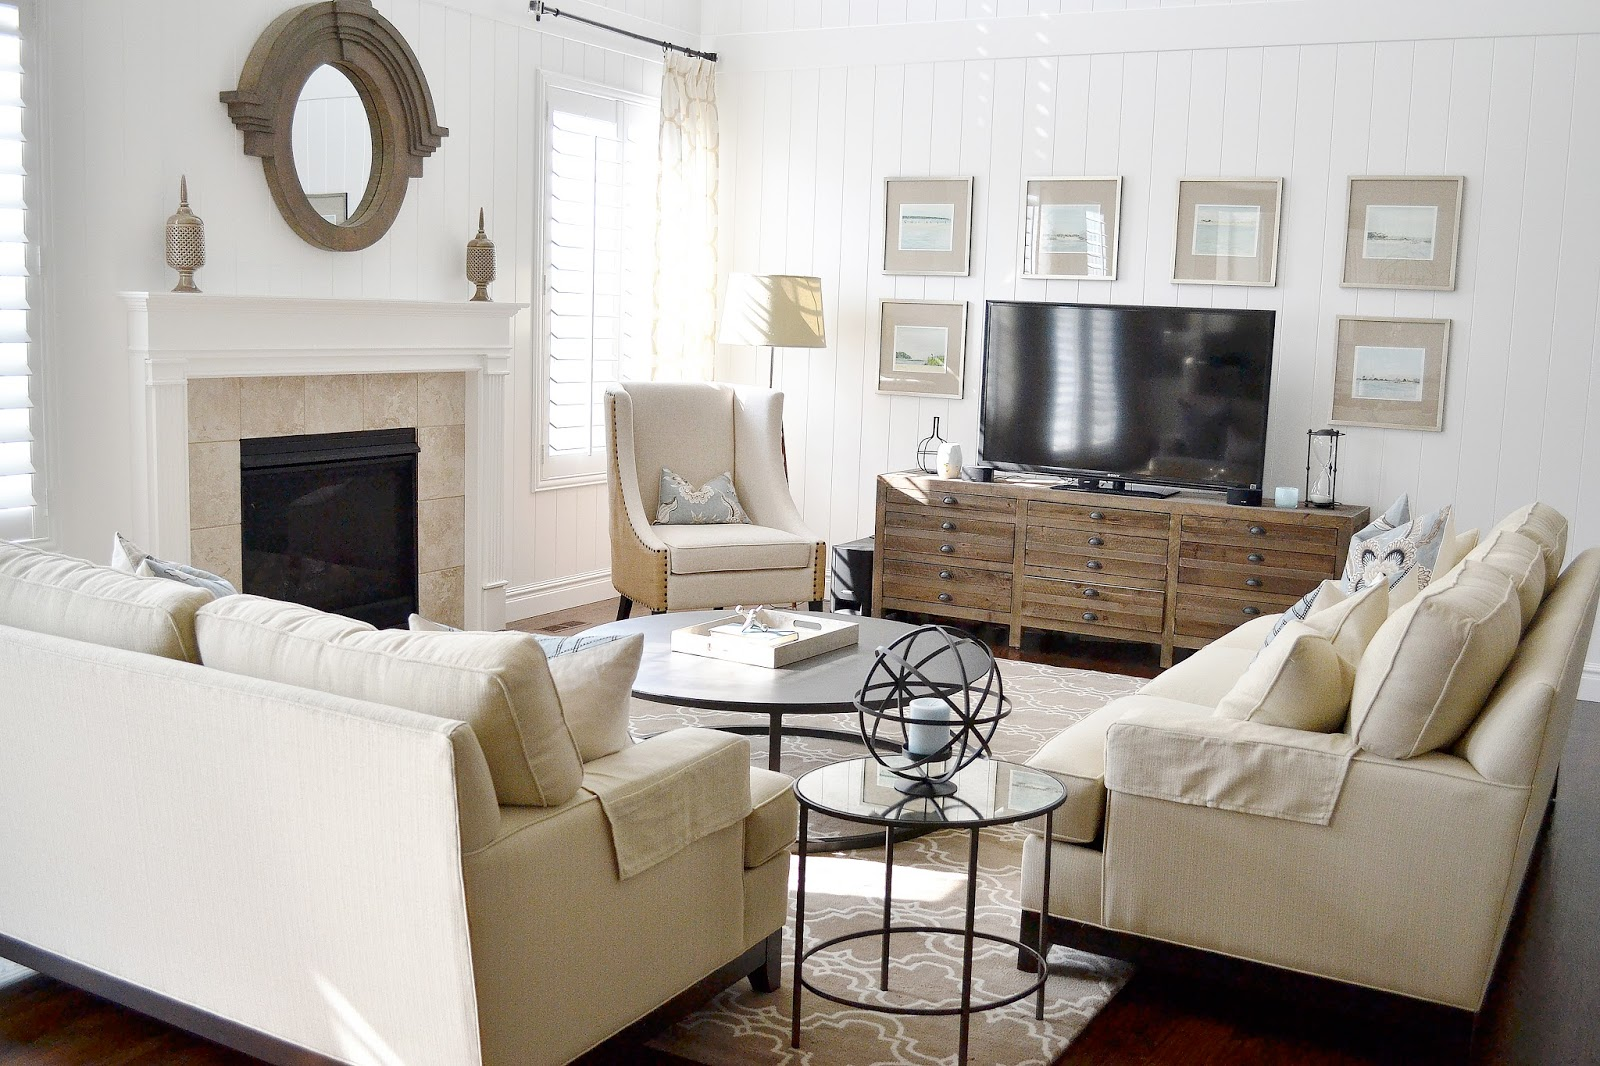 Astonishing Coastal Living Room Look 4 Less Sita Montgomery Interiors Largest Home Design Picture Inspirations Pitcheantrous